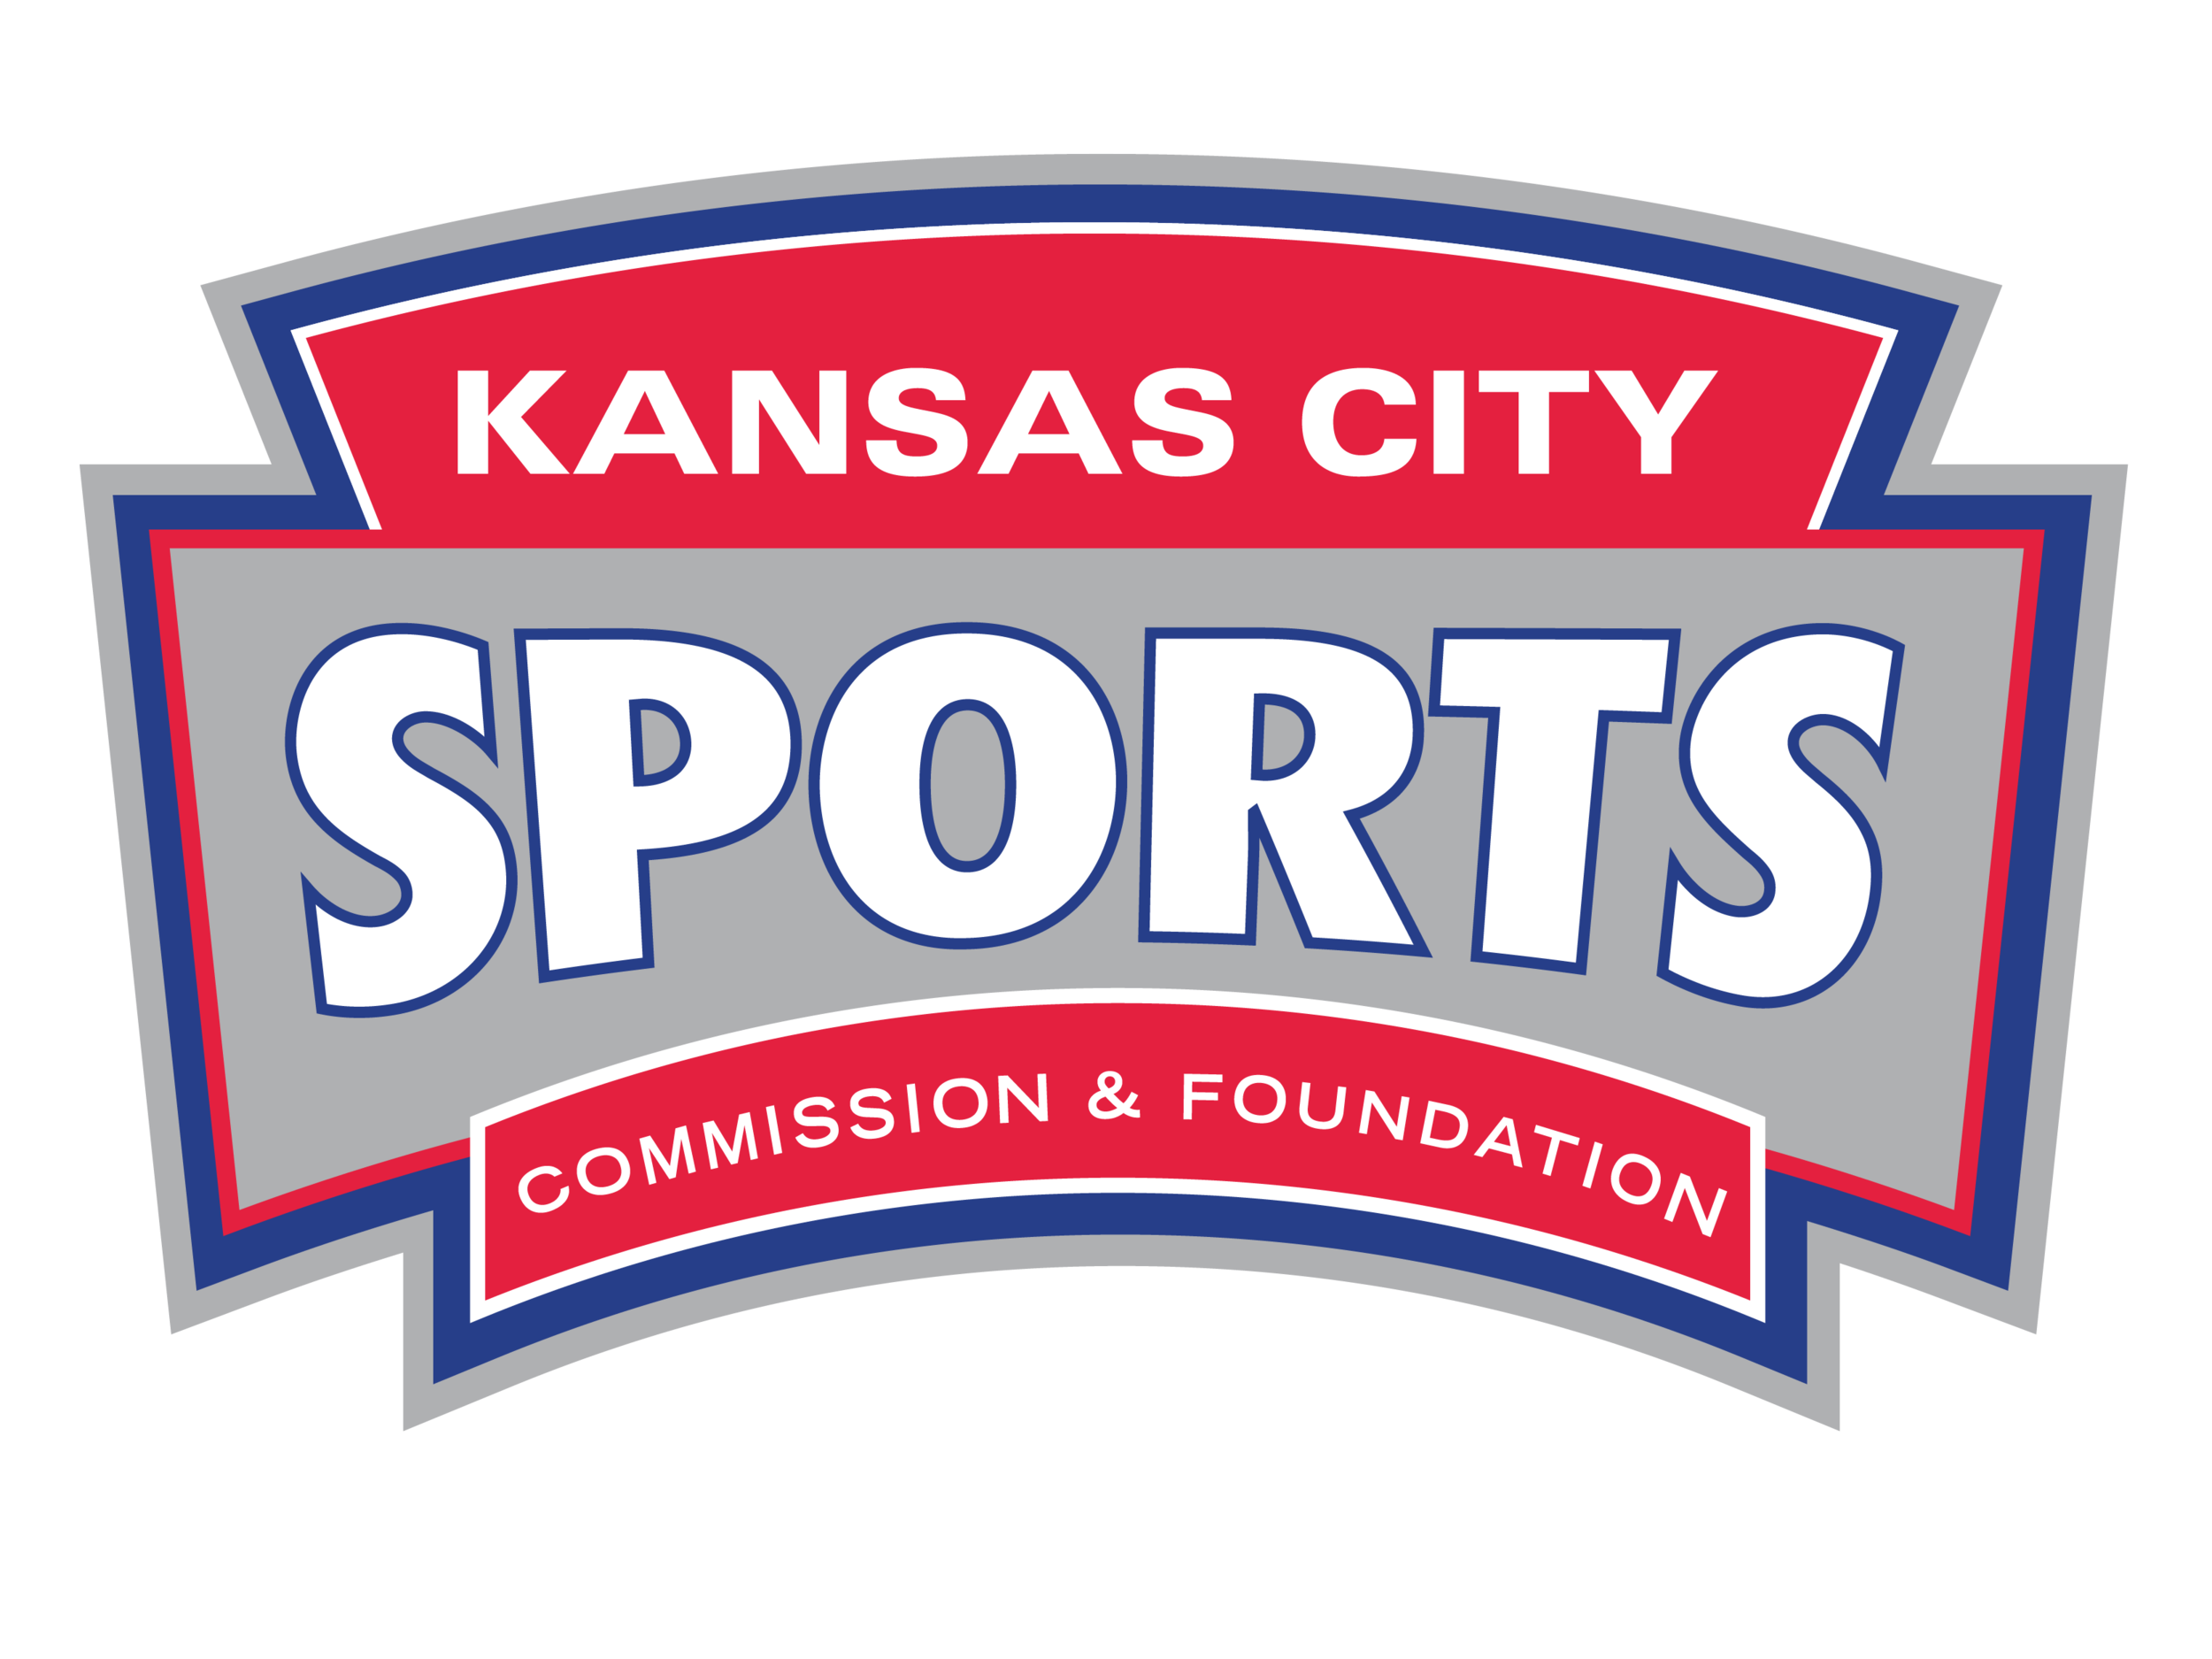 MISSION - Drive Kansas City's overall sports strategy, enrich the quality of life, create economic impact and raise visibility for our region.